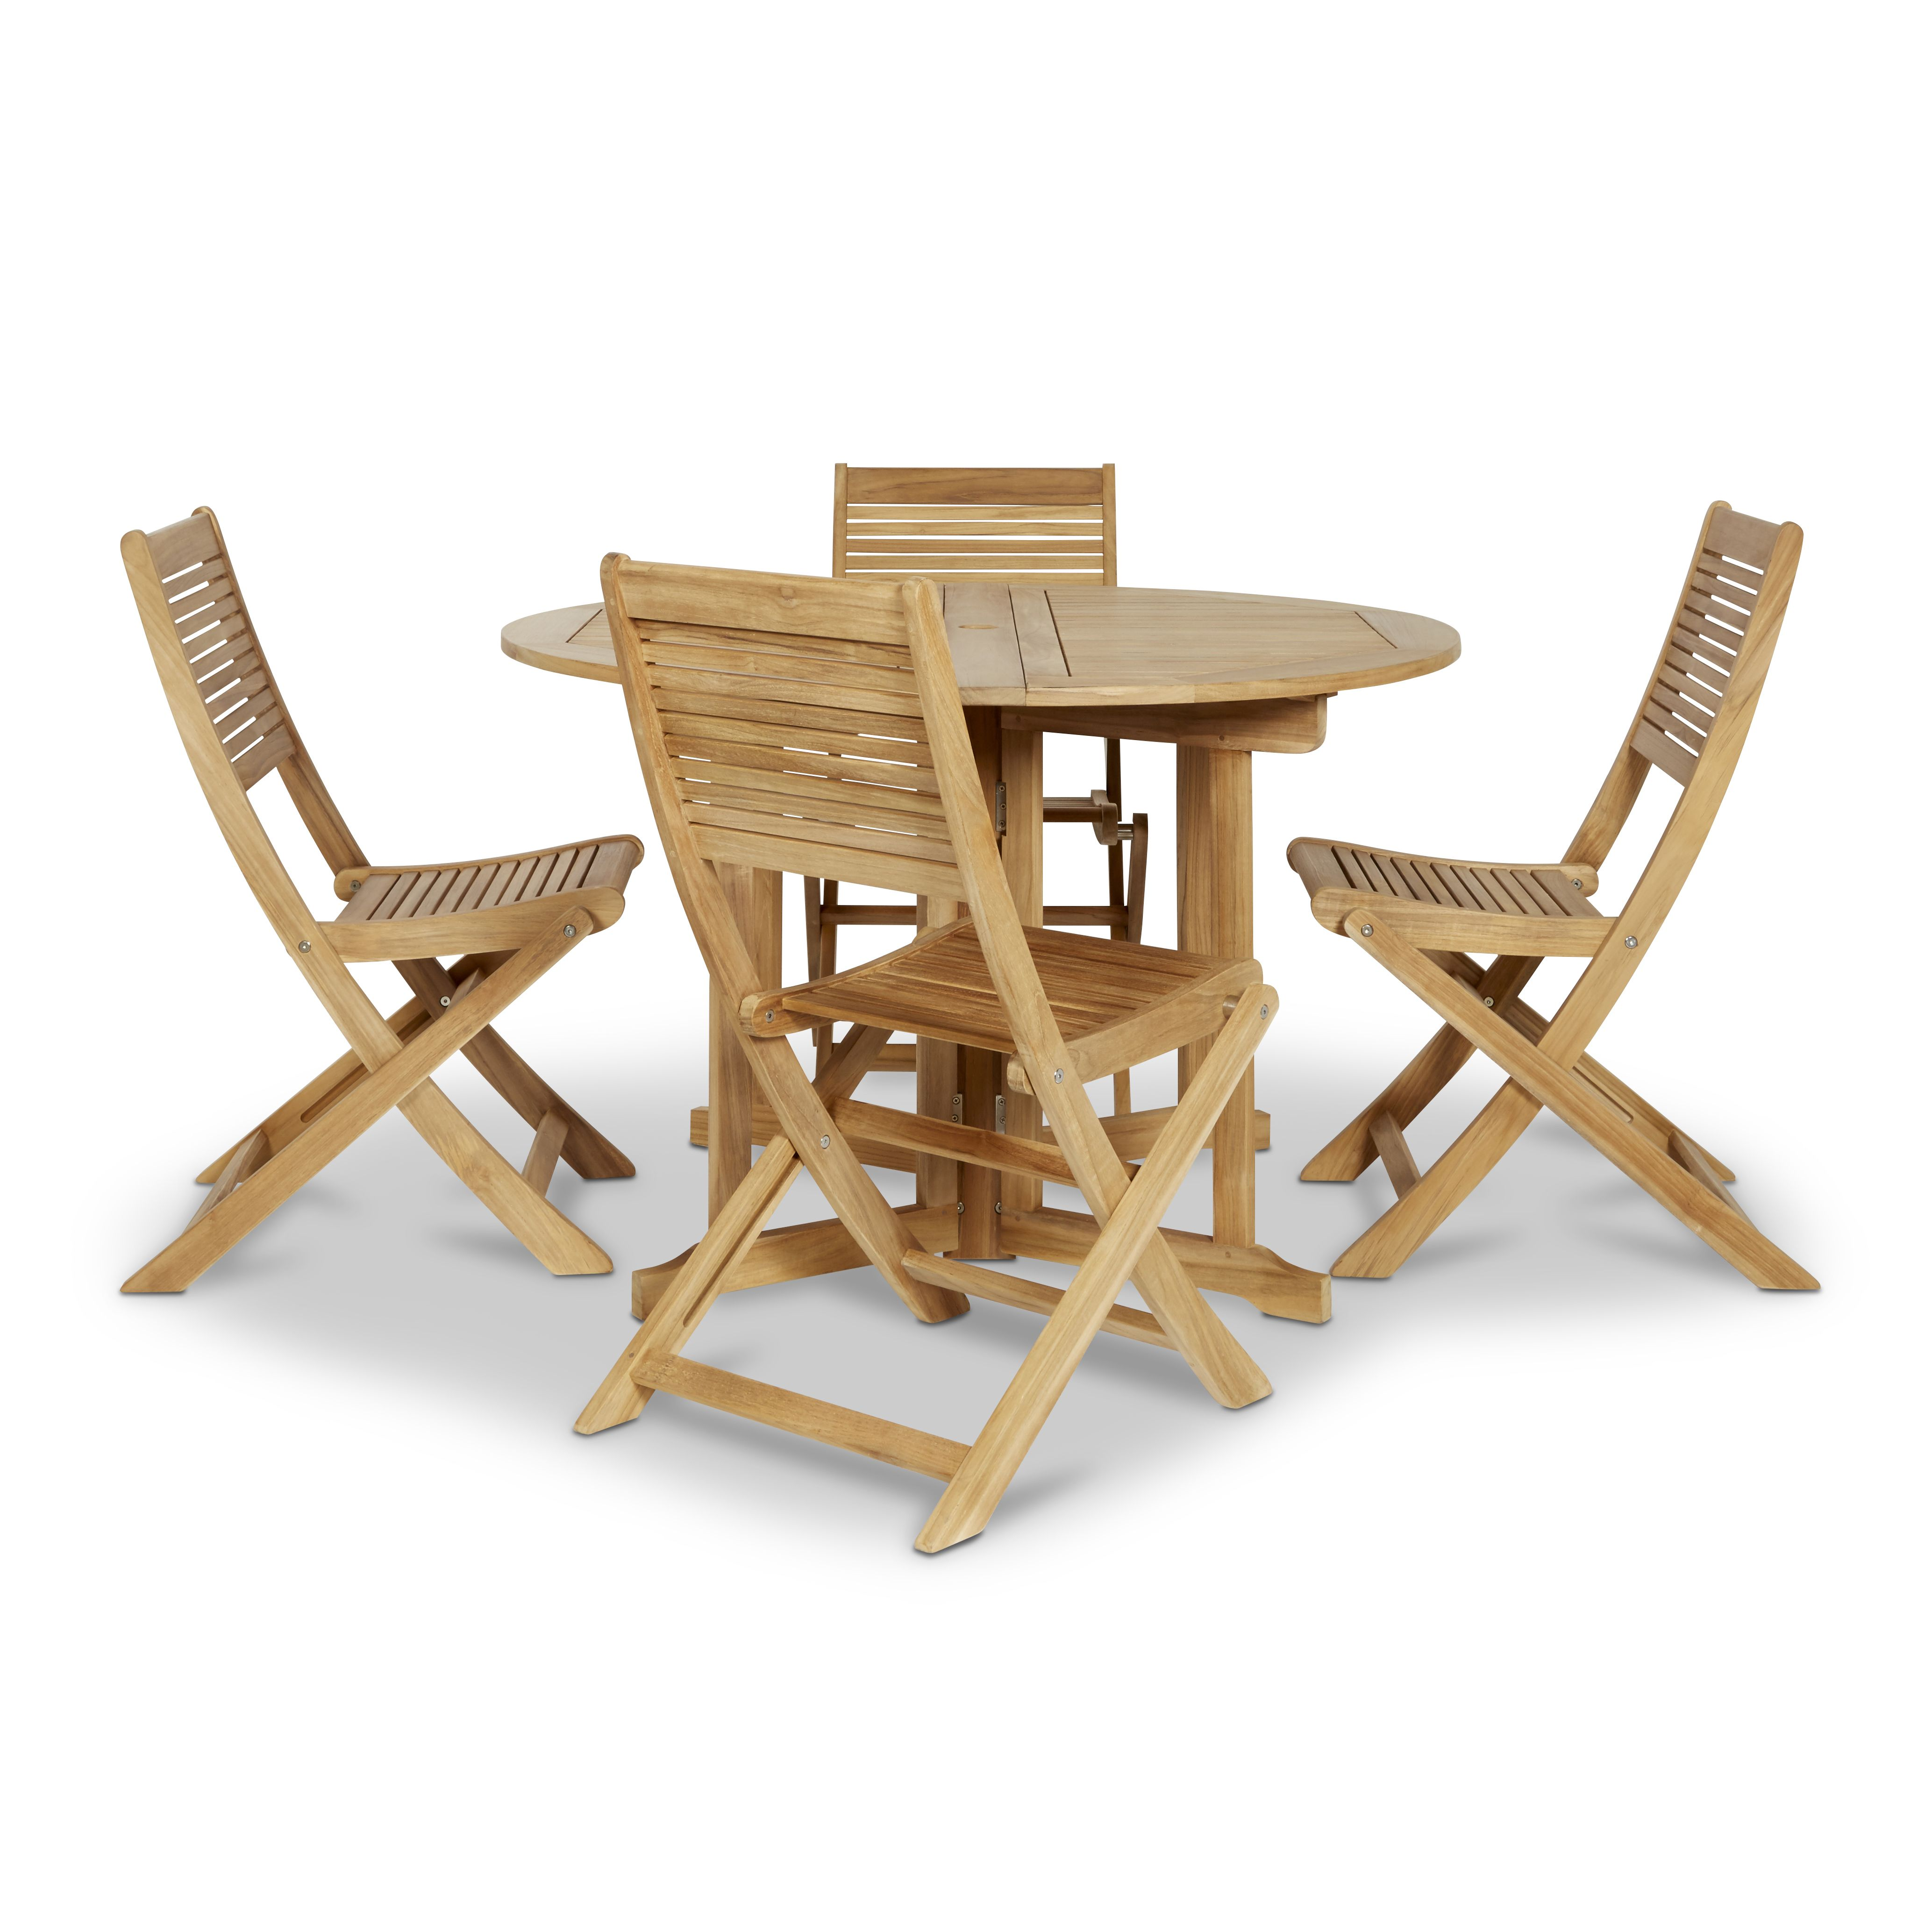 Marvelous photograph of Roscana Wooden Chair Pack of 2 Departments DIY at B&Q with #4B1704 color and 4000x4000 pixels